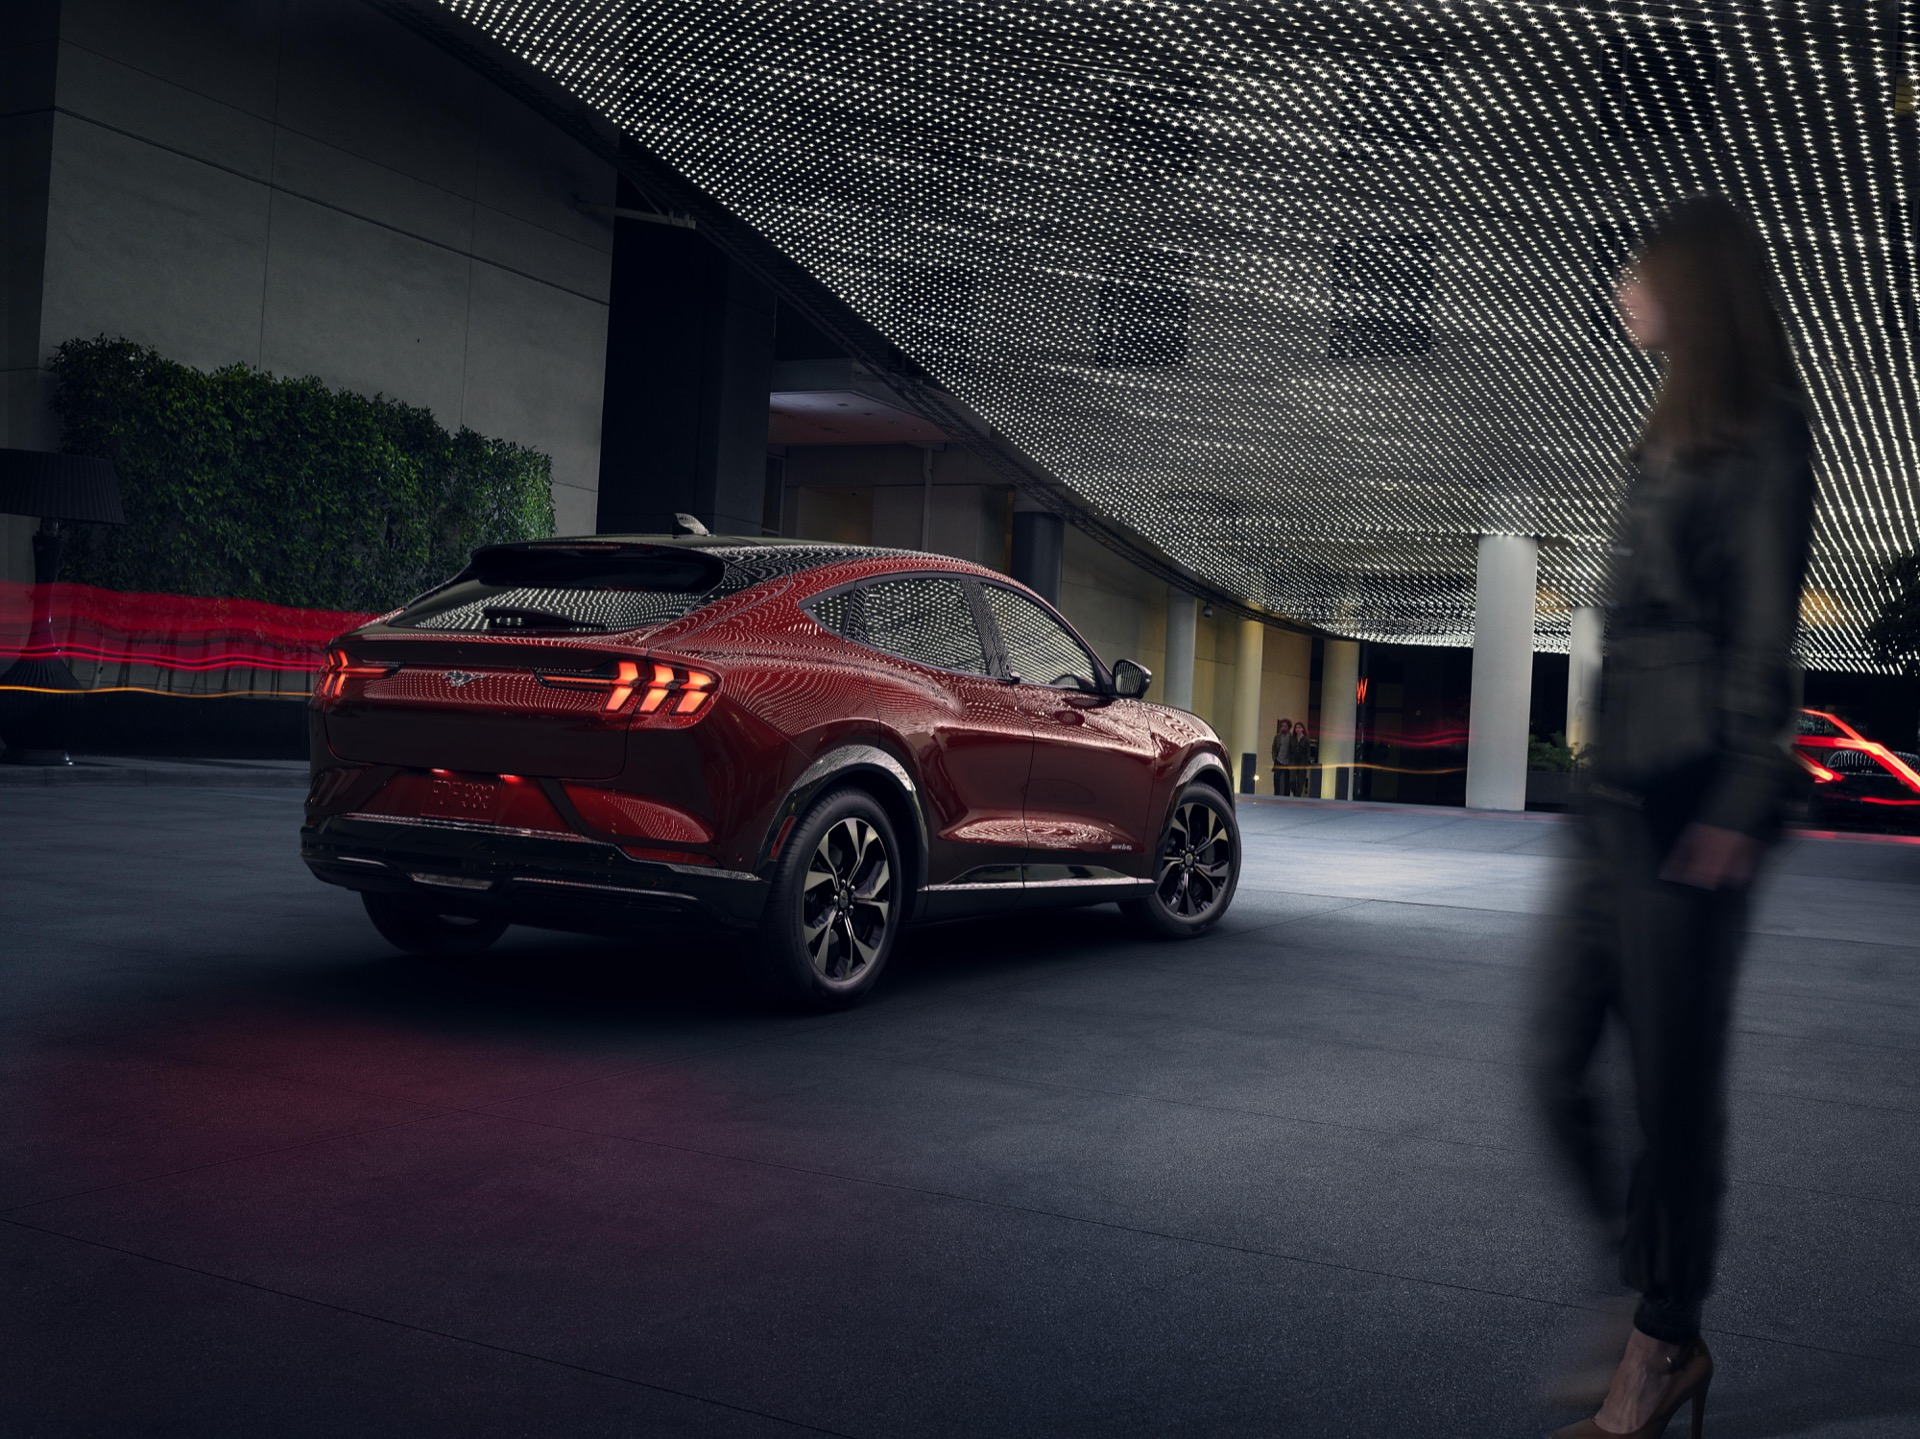 2021 Ford Mustang Mach-E Electric SUV Prices And Specs ...